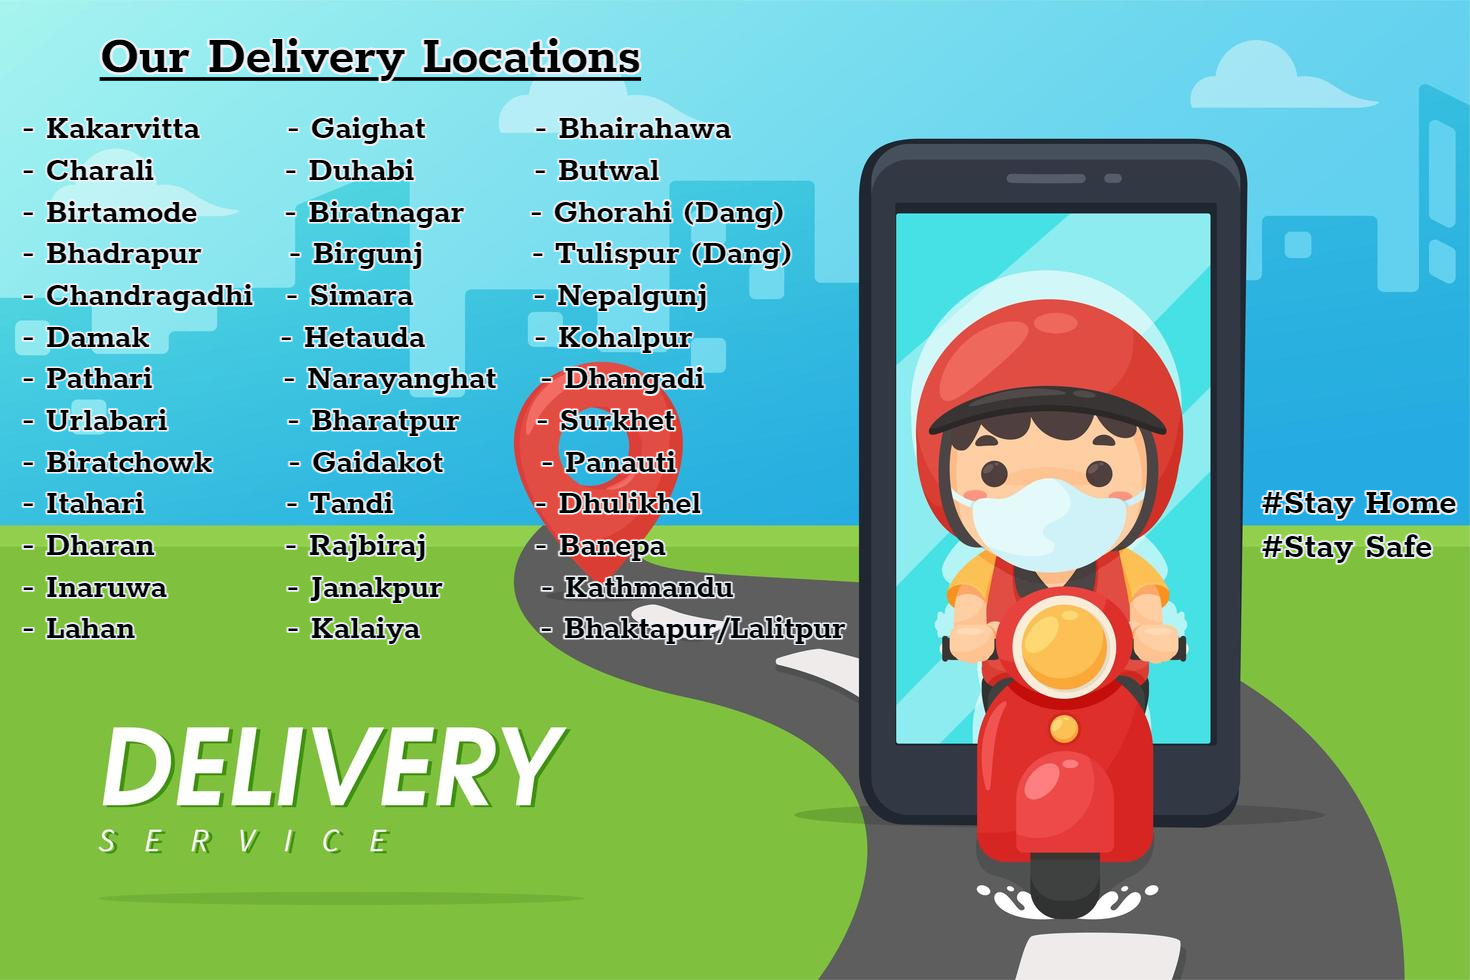 Our Delivery Locations